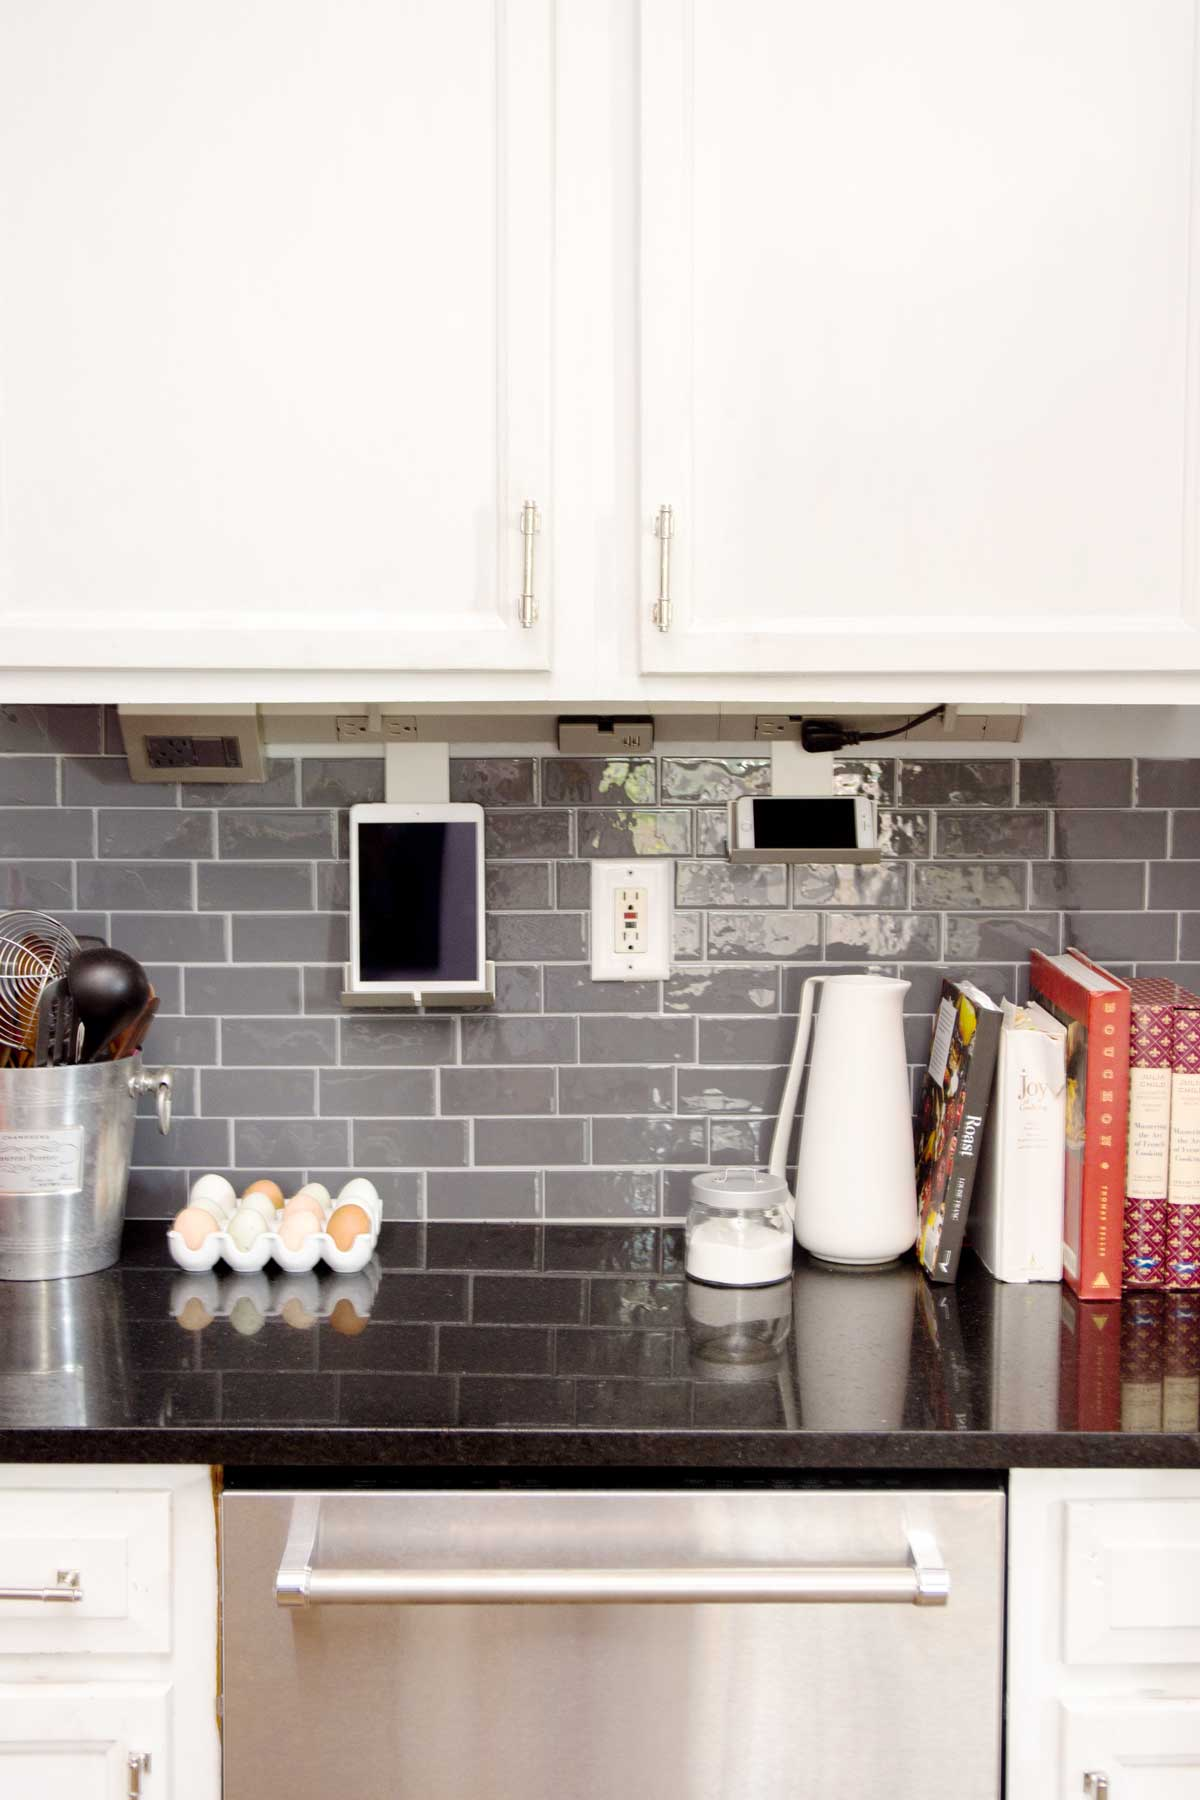 Under-cabinet lighting and power system by Legrand in our kitchen on Thou Swell @thouswellblog